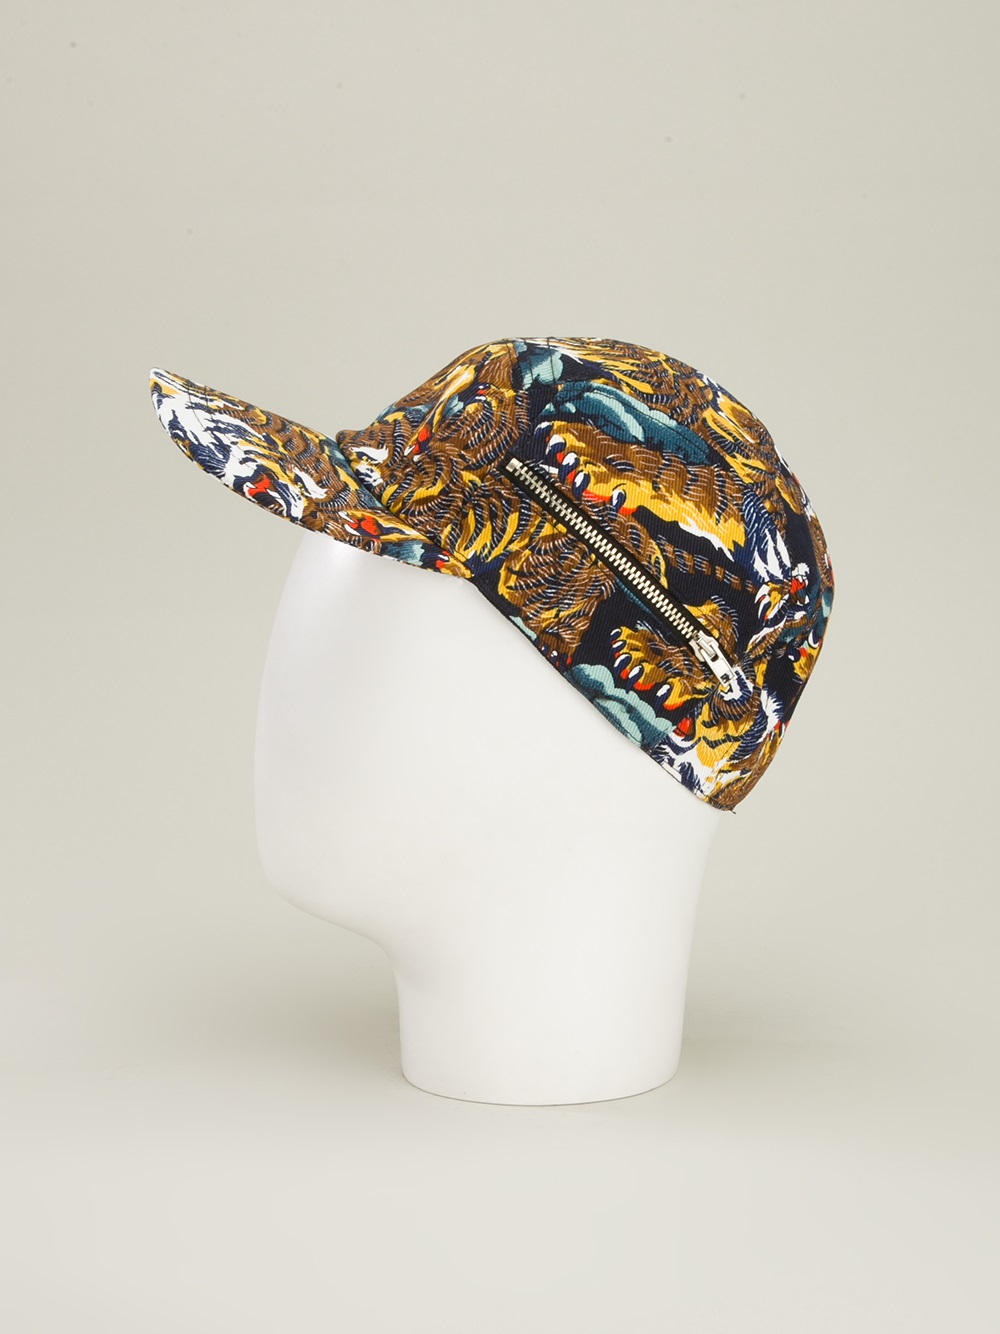 Lyst - KENZO Flying Tiger Cap for Men e673f62c306